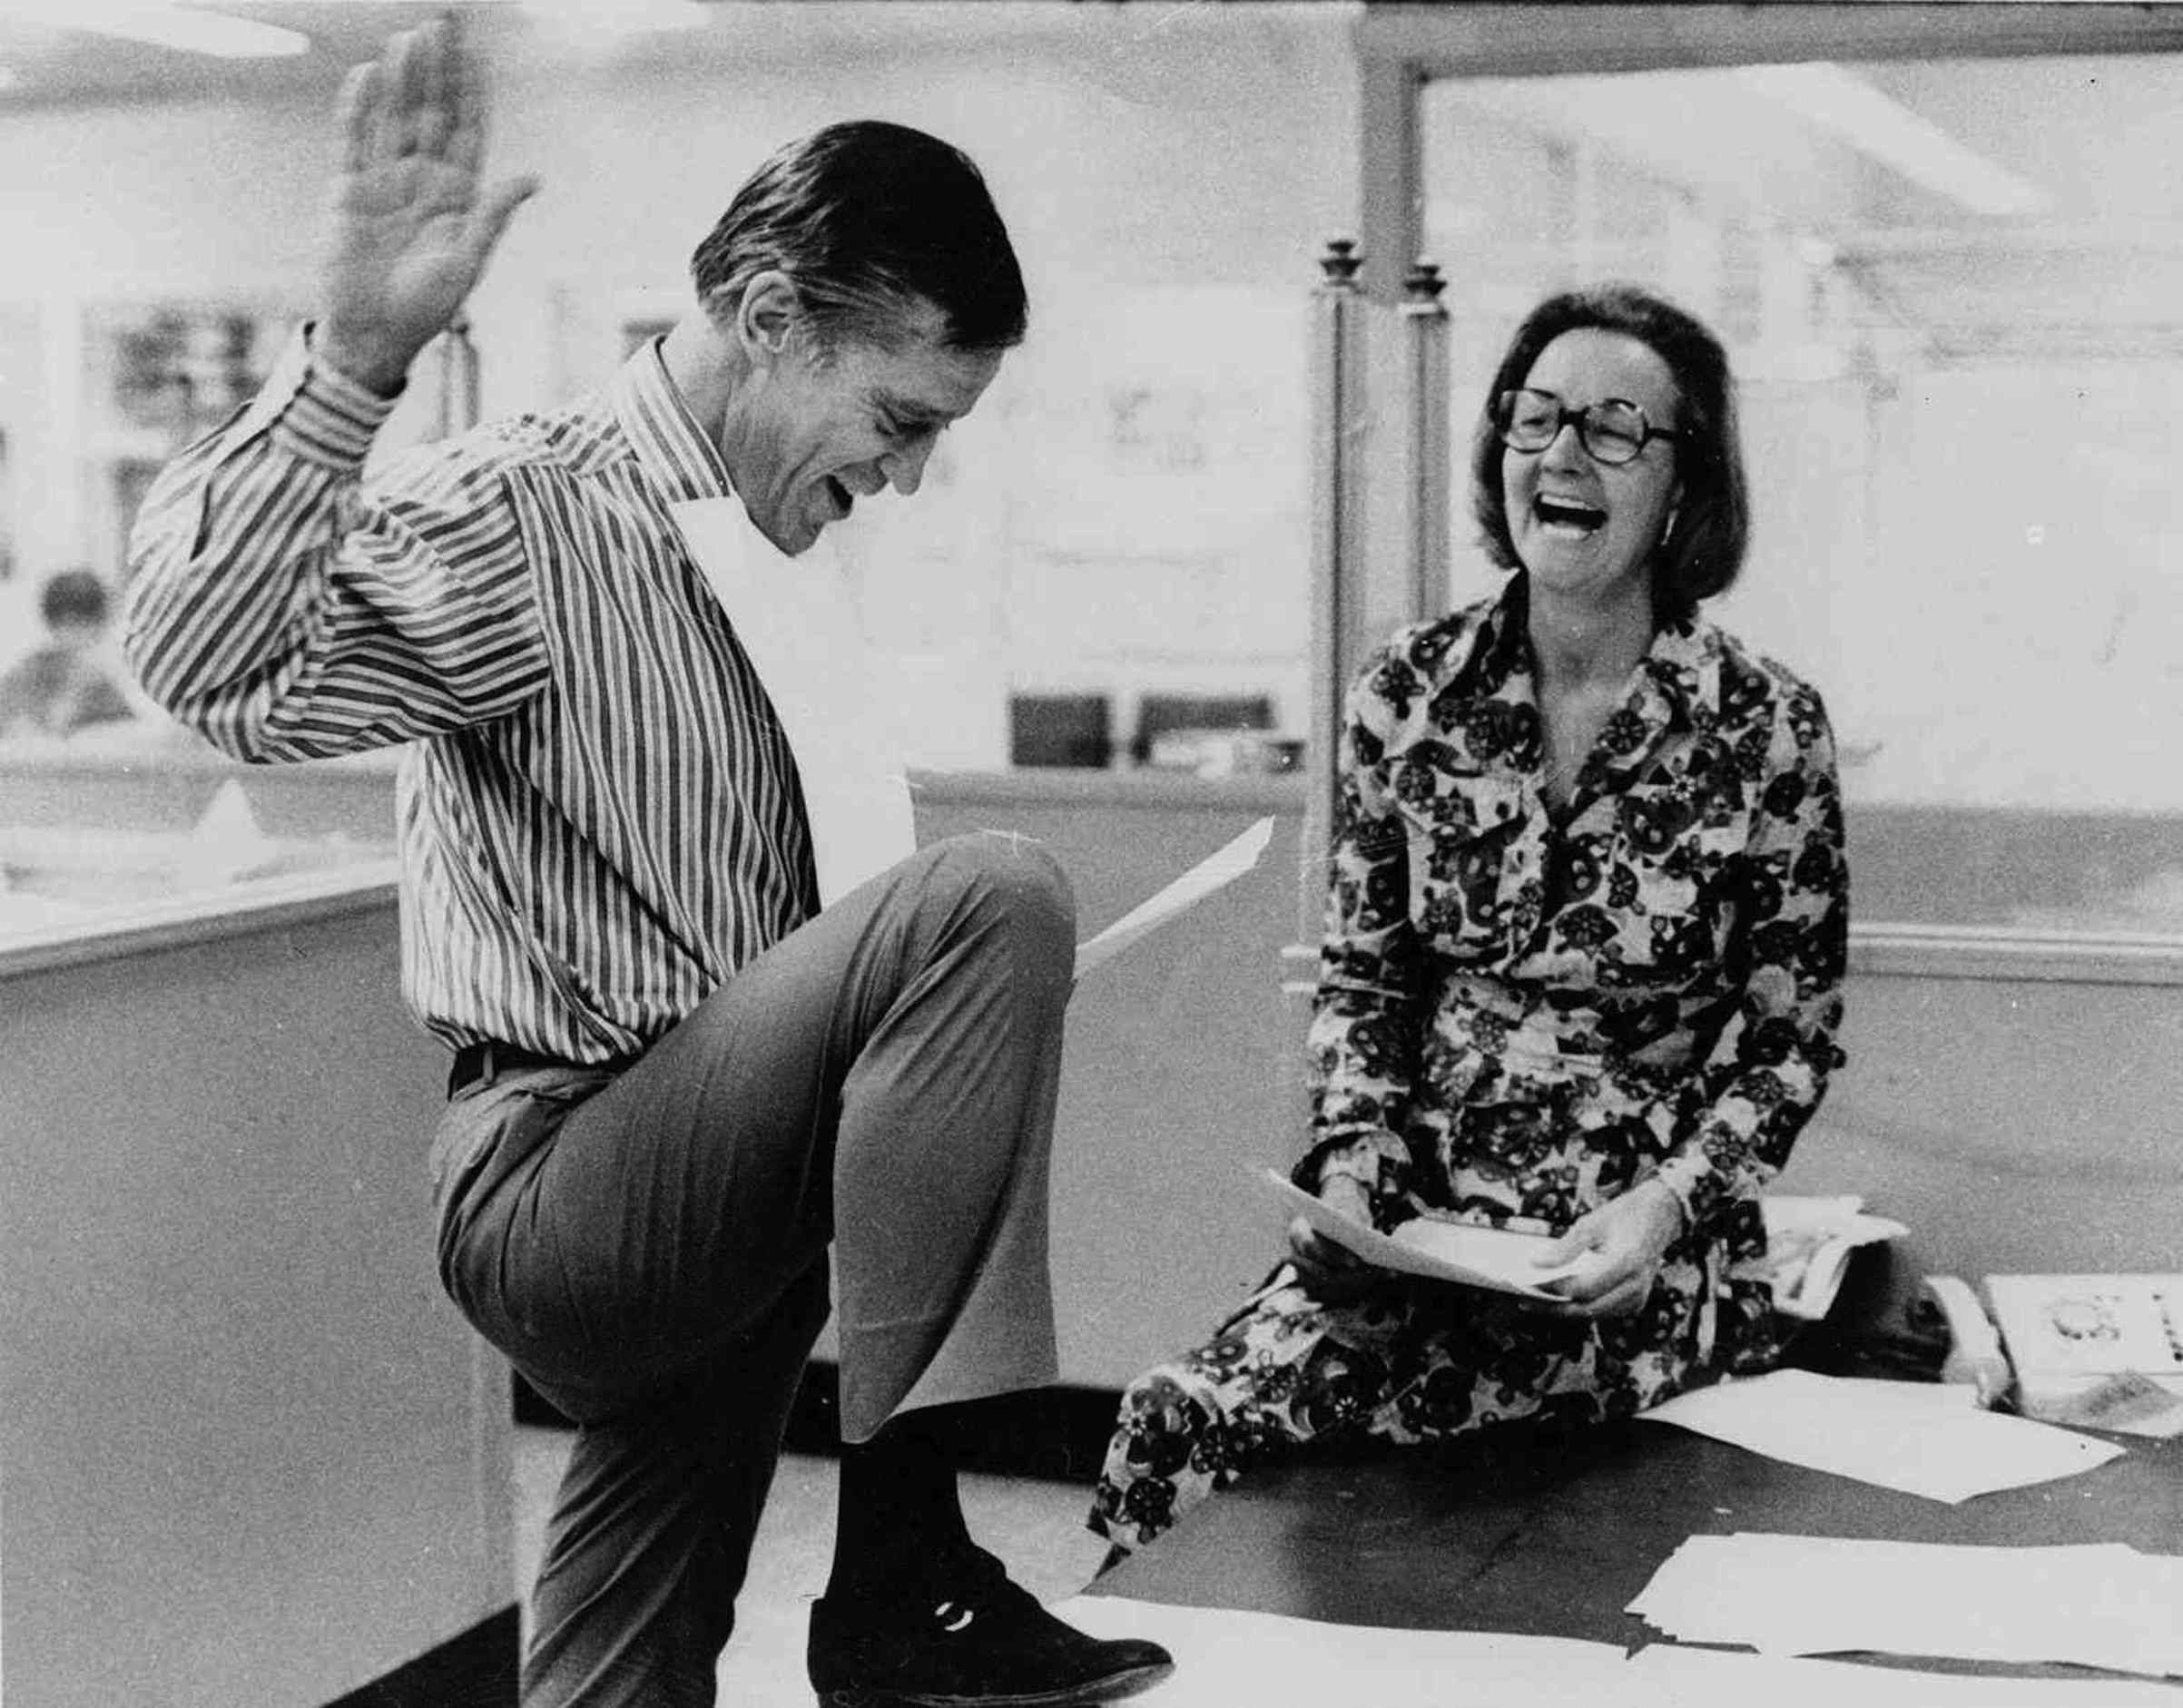 Katharine Graham, publisher of the Washington Post, and Executive Editor Benjamin C. Bradlee look over reports of the 6 to 3 Supreme Court decision which permitted the paper to publish stories based on the secret Pentagon study of the Vietnam War, on June 30, 1971.